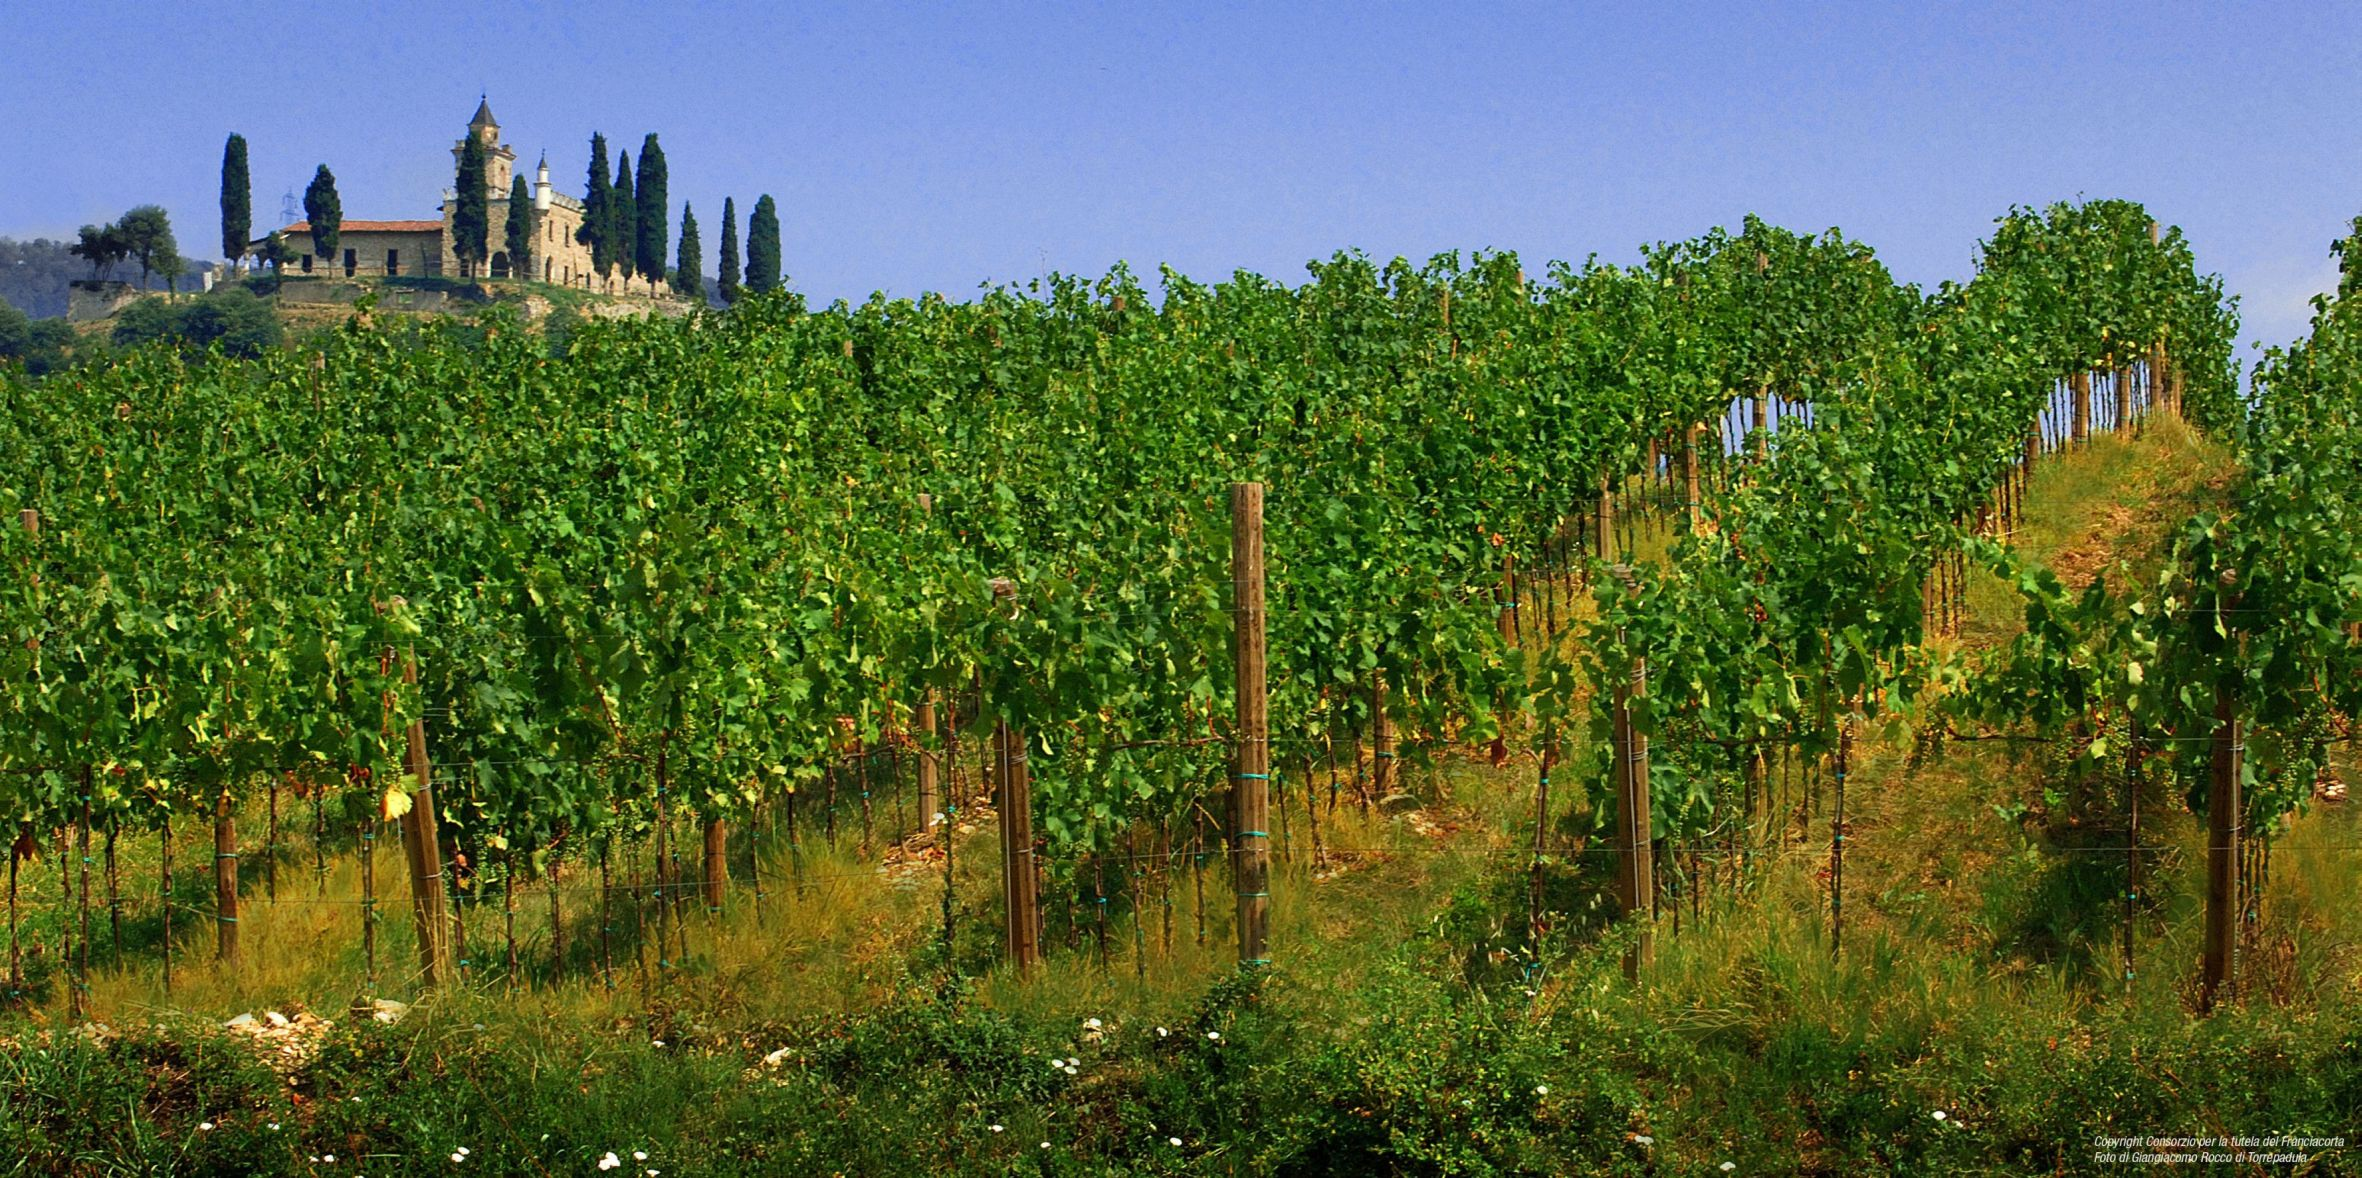 Franciacorta – a fast-growing tourist destination which is not only of great natural and enogastronomic interest, but also that of a historical and cultural nature.